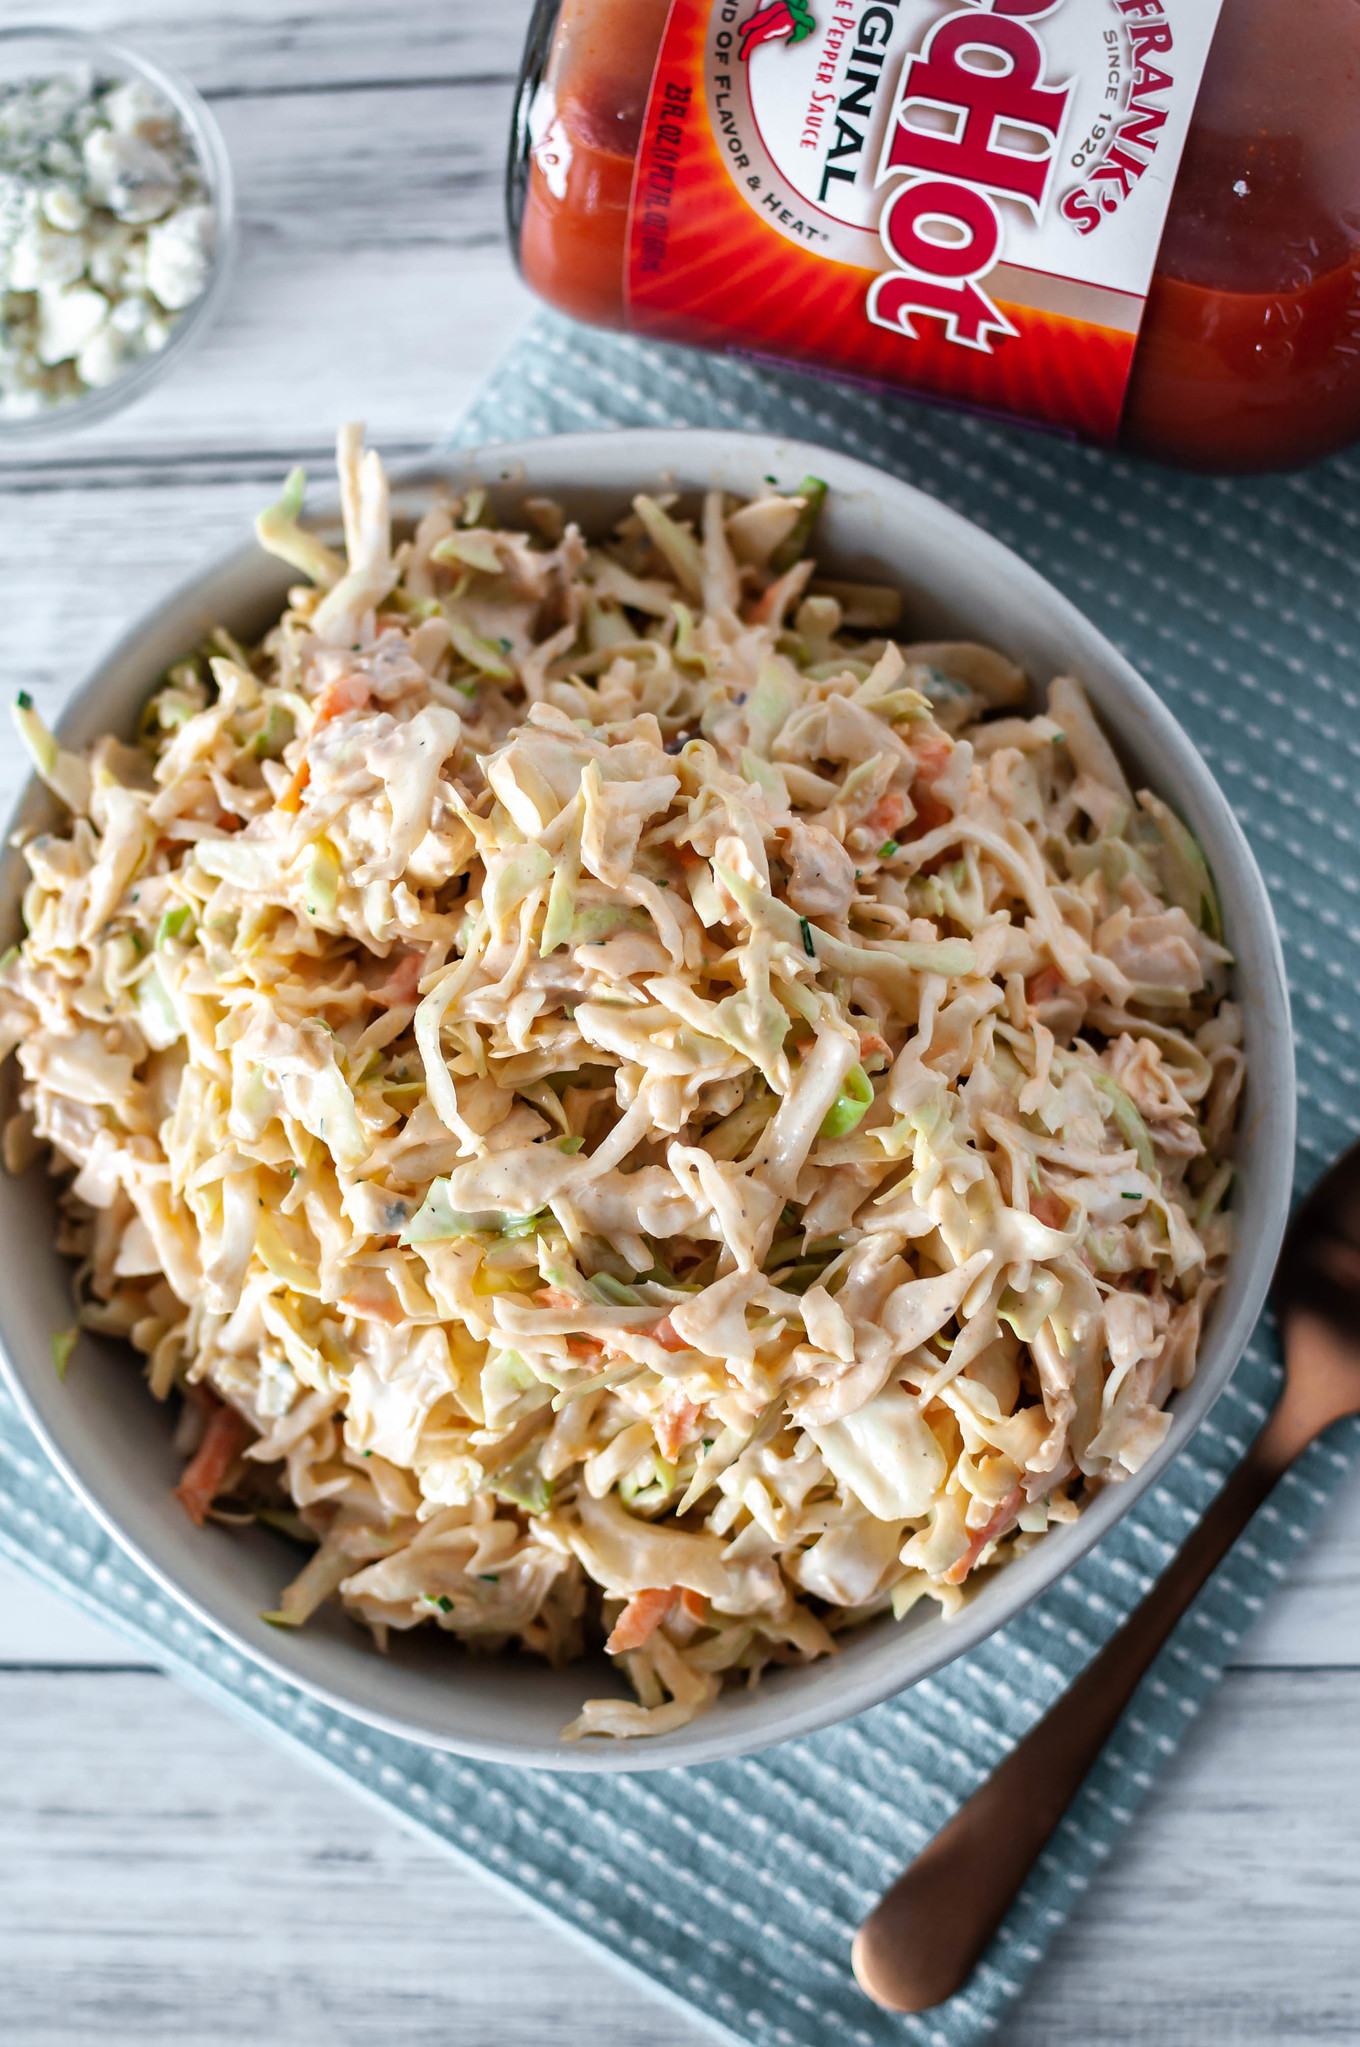 Today I'm sharing the Top 10 Recipes of 2018. These reader favorites from the year are sure to be a crowd pleaser.